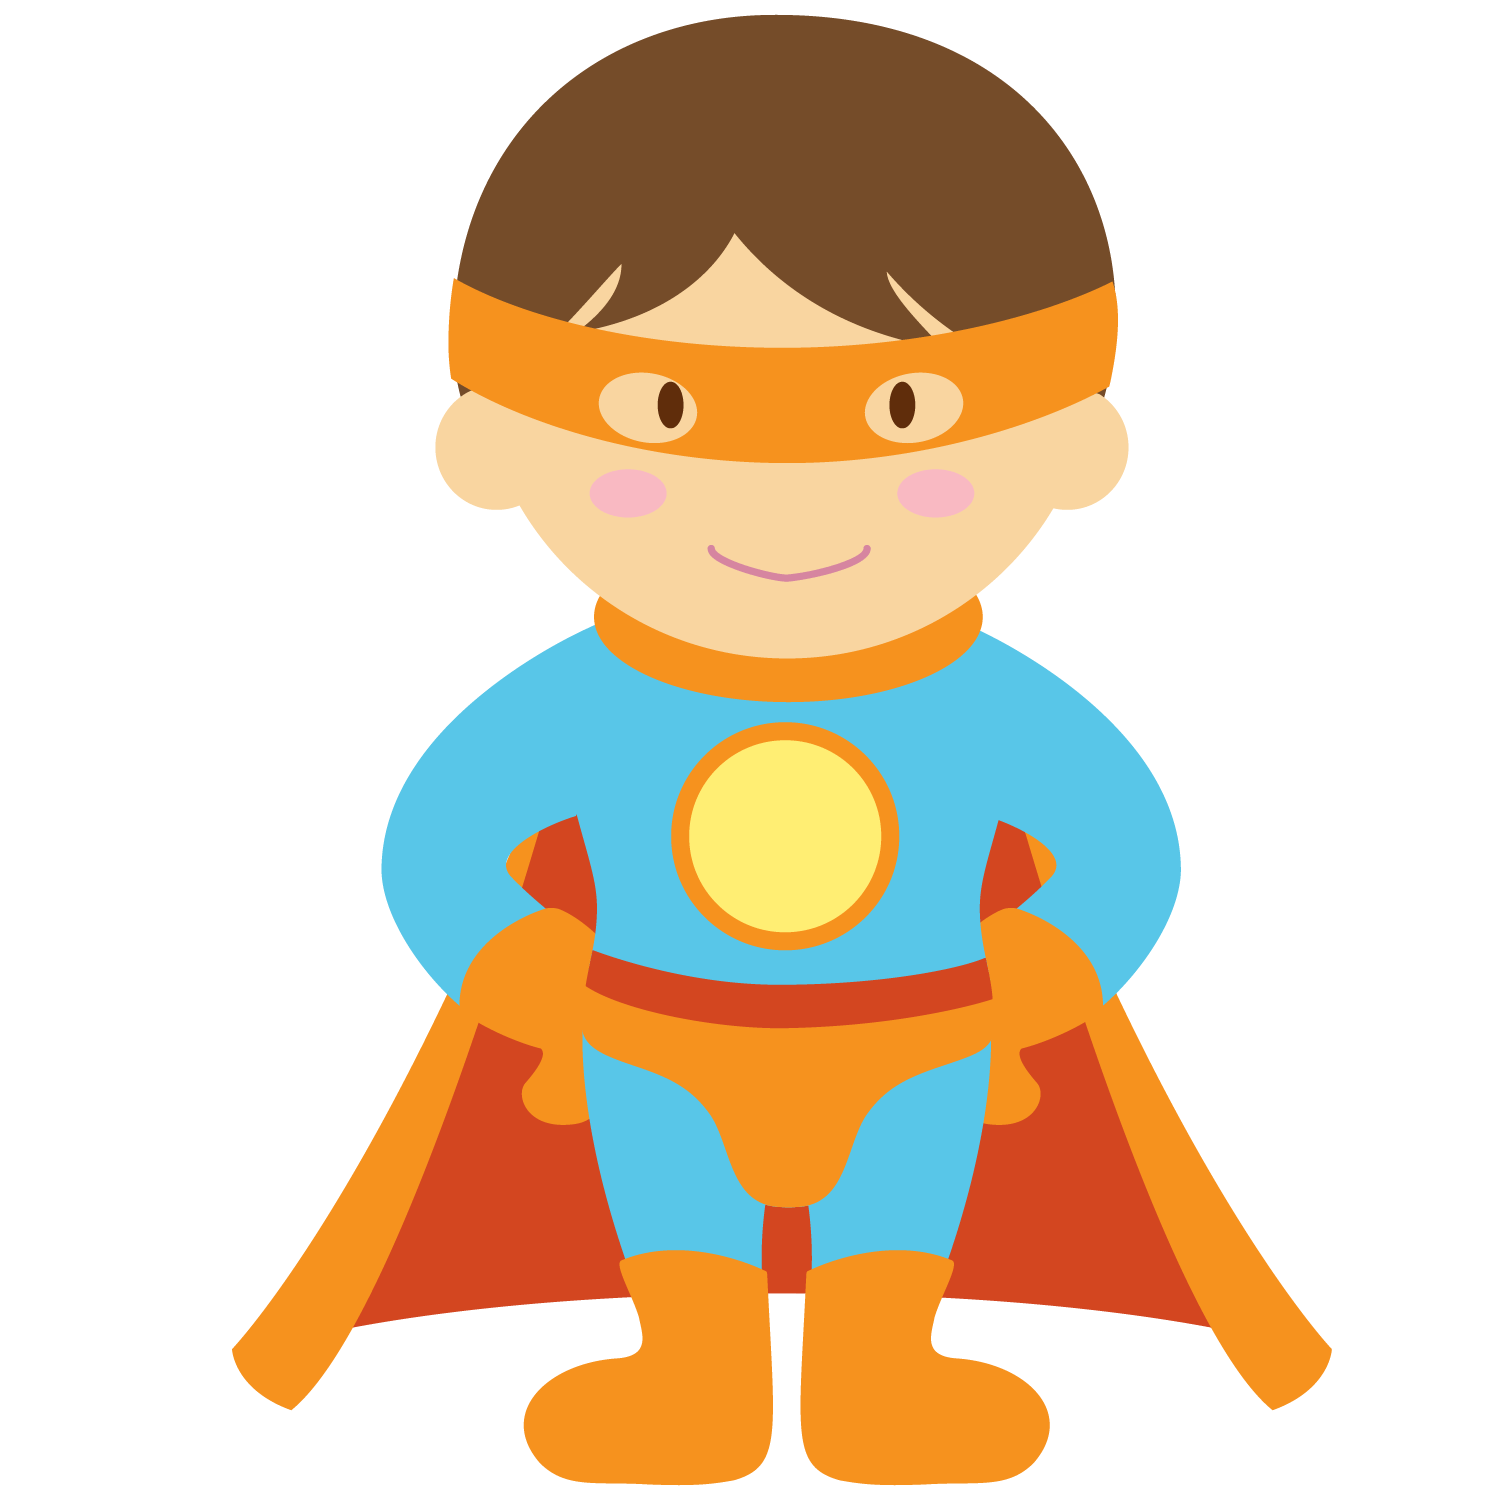 hight resolution of 1500x1500 kids dressed as superheroes clipart